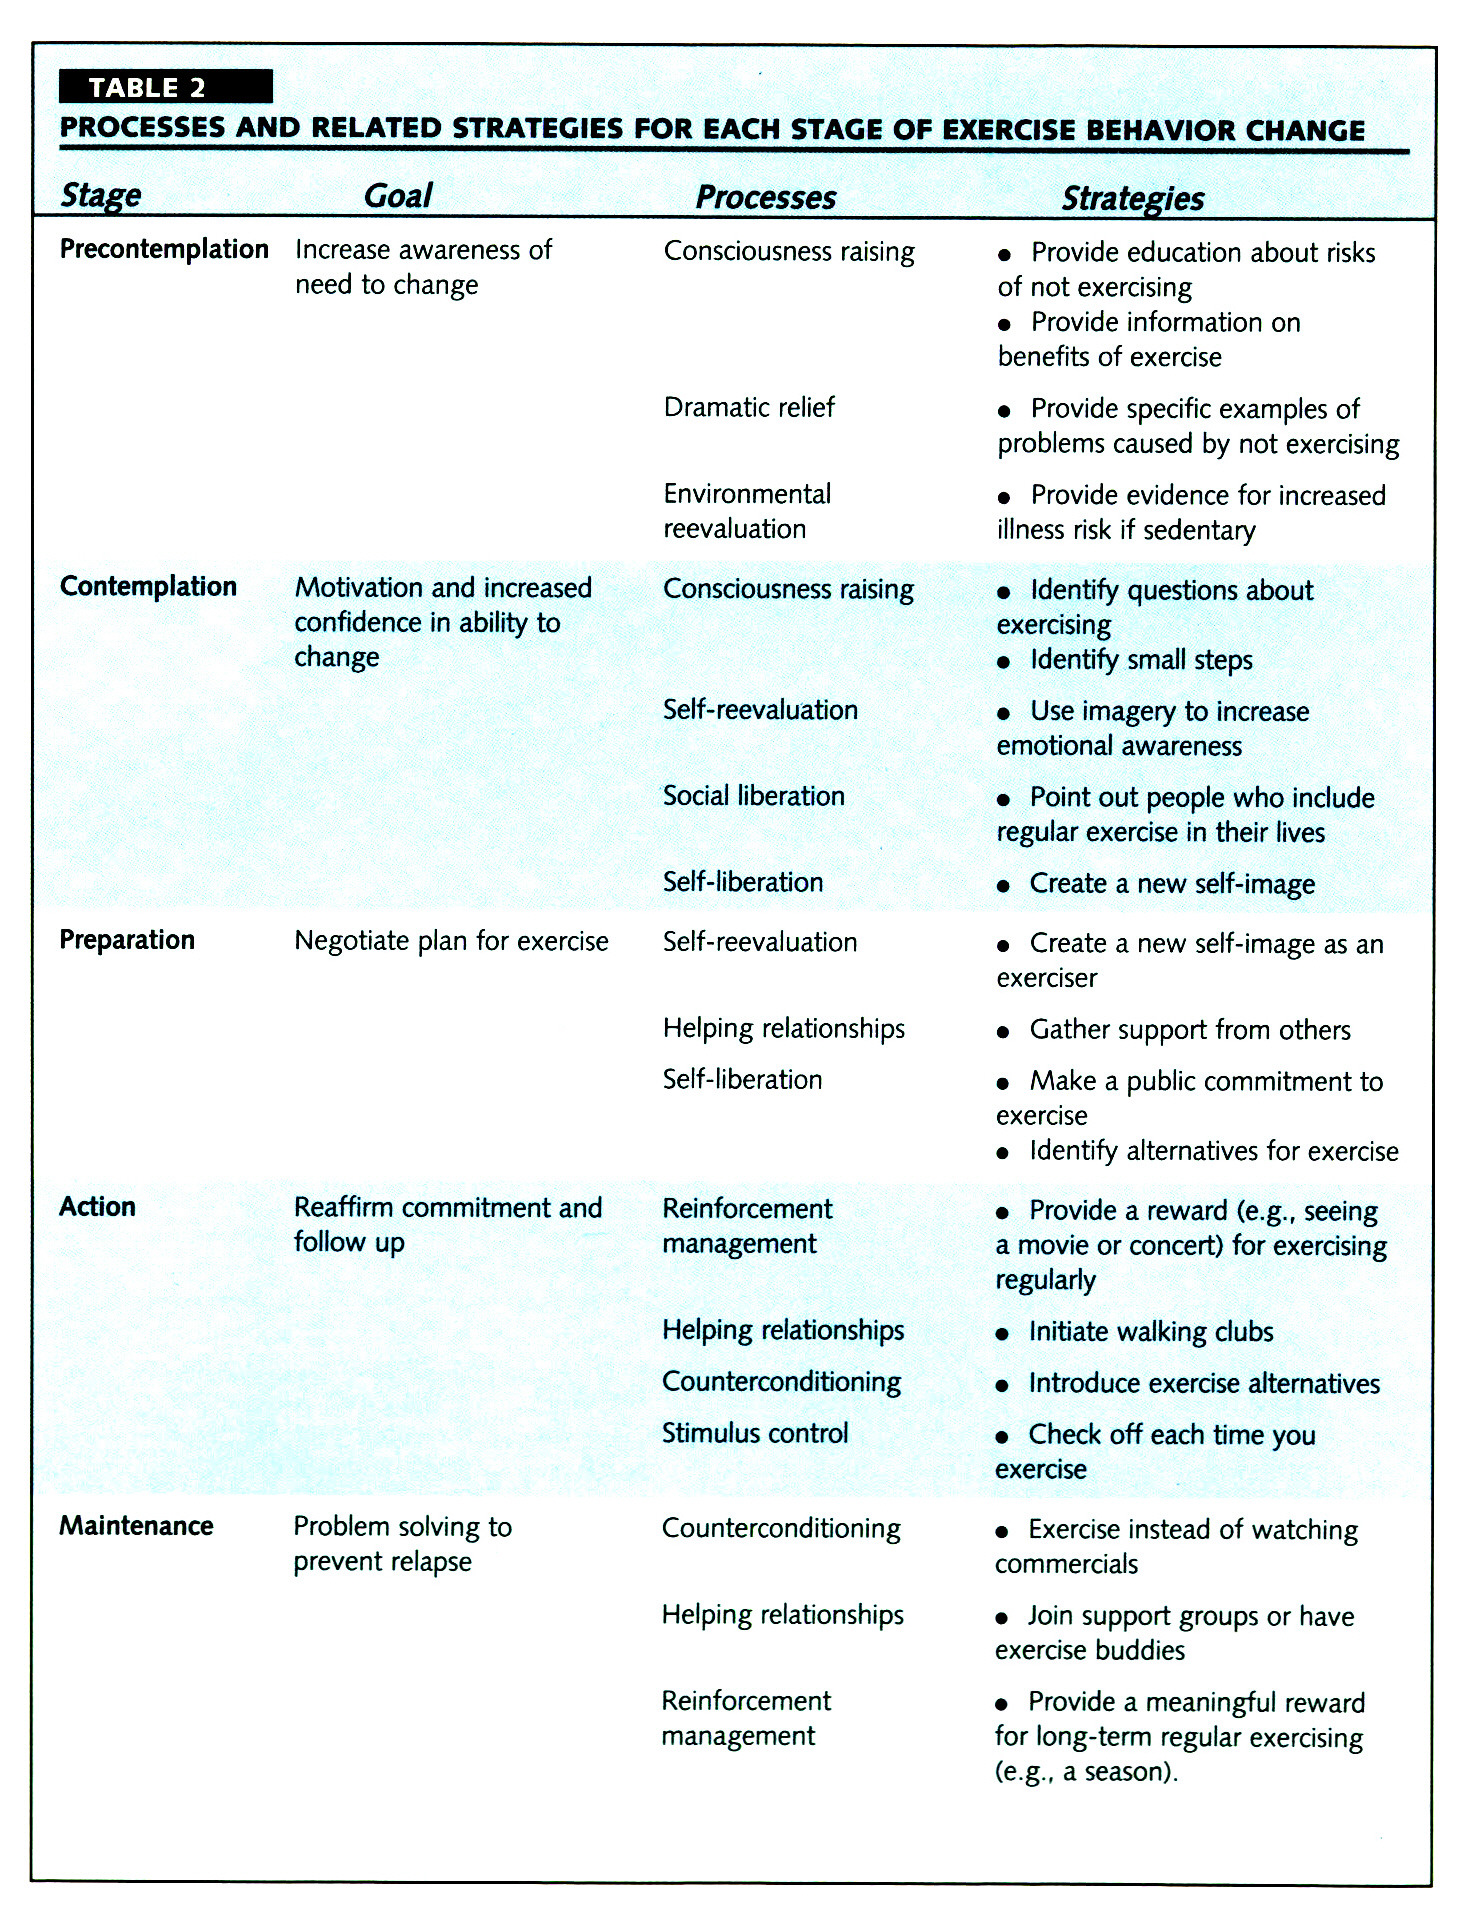 TABLE 2PROCESSES AND RELATED STRATEGIES FOR EACH STAGE OF EXERCISE BEHAVIOR CHANGE